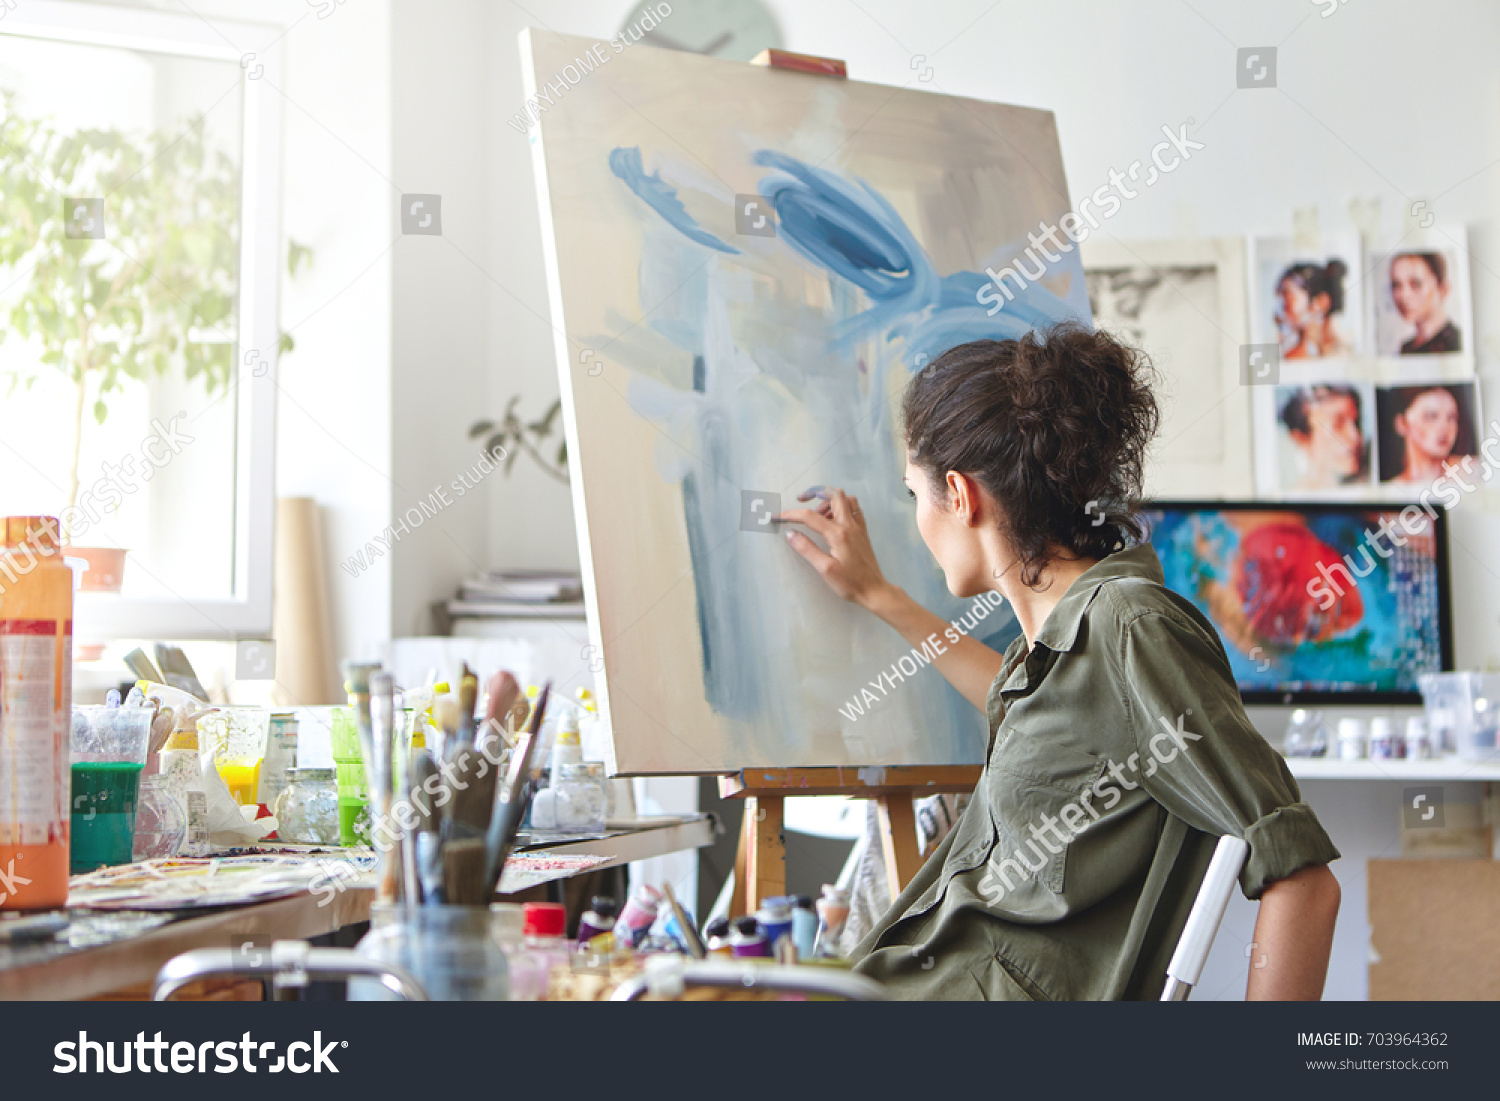 Art, creativity, hobby, job and creative occupation concept. Rear view of busy female artist sitting on chair in front of easel, painting with fingers, using white and blue oil or acrylic paint #703964362